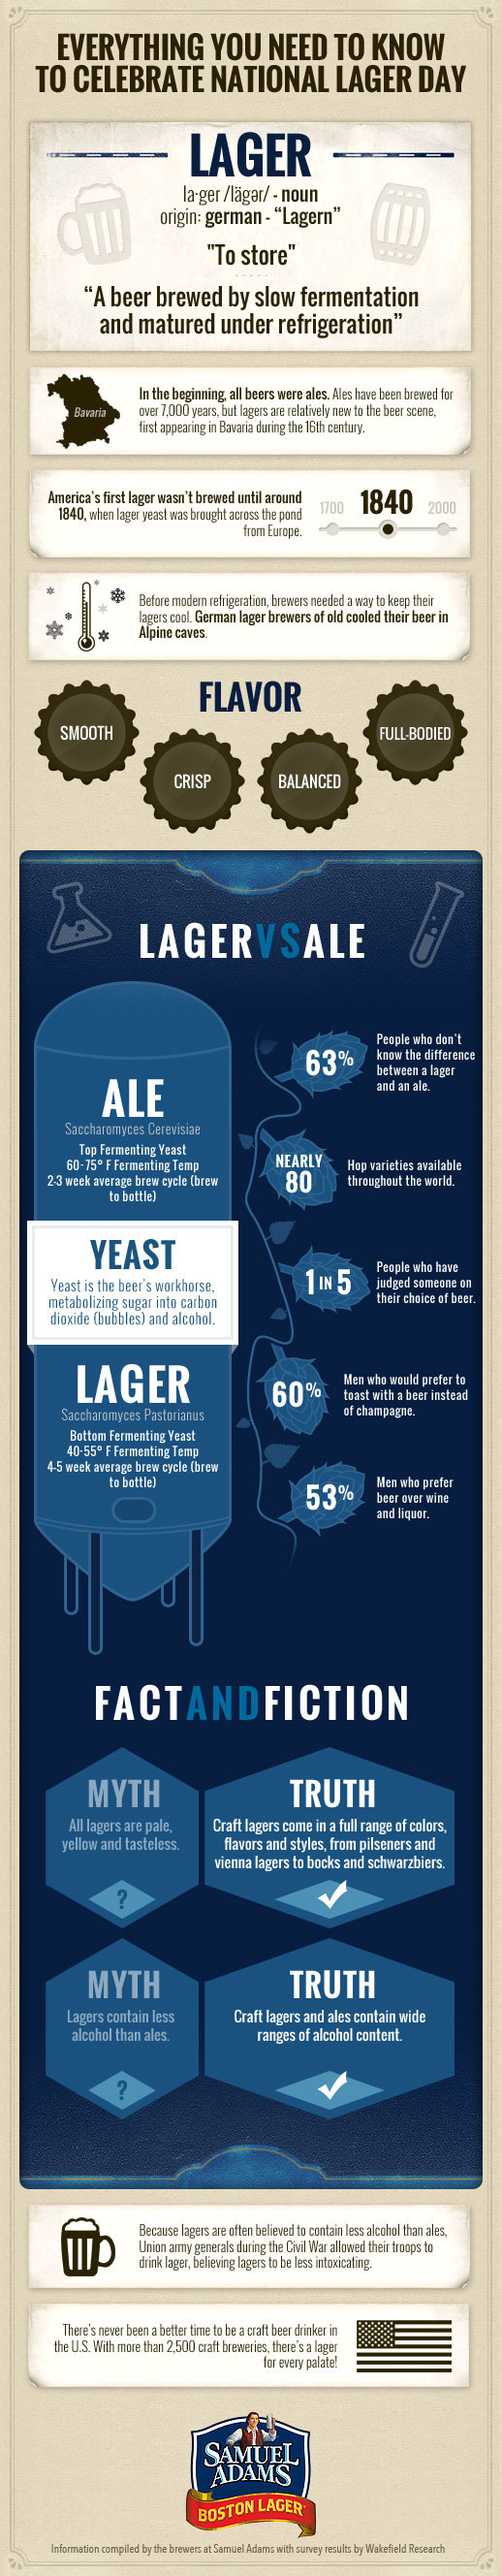 Samuel-Adams-National-Lager-Day-Infographic